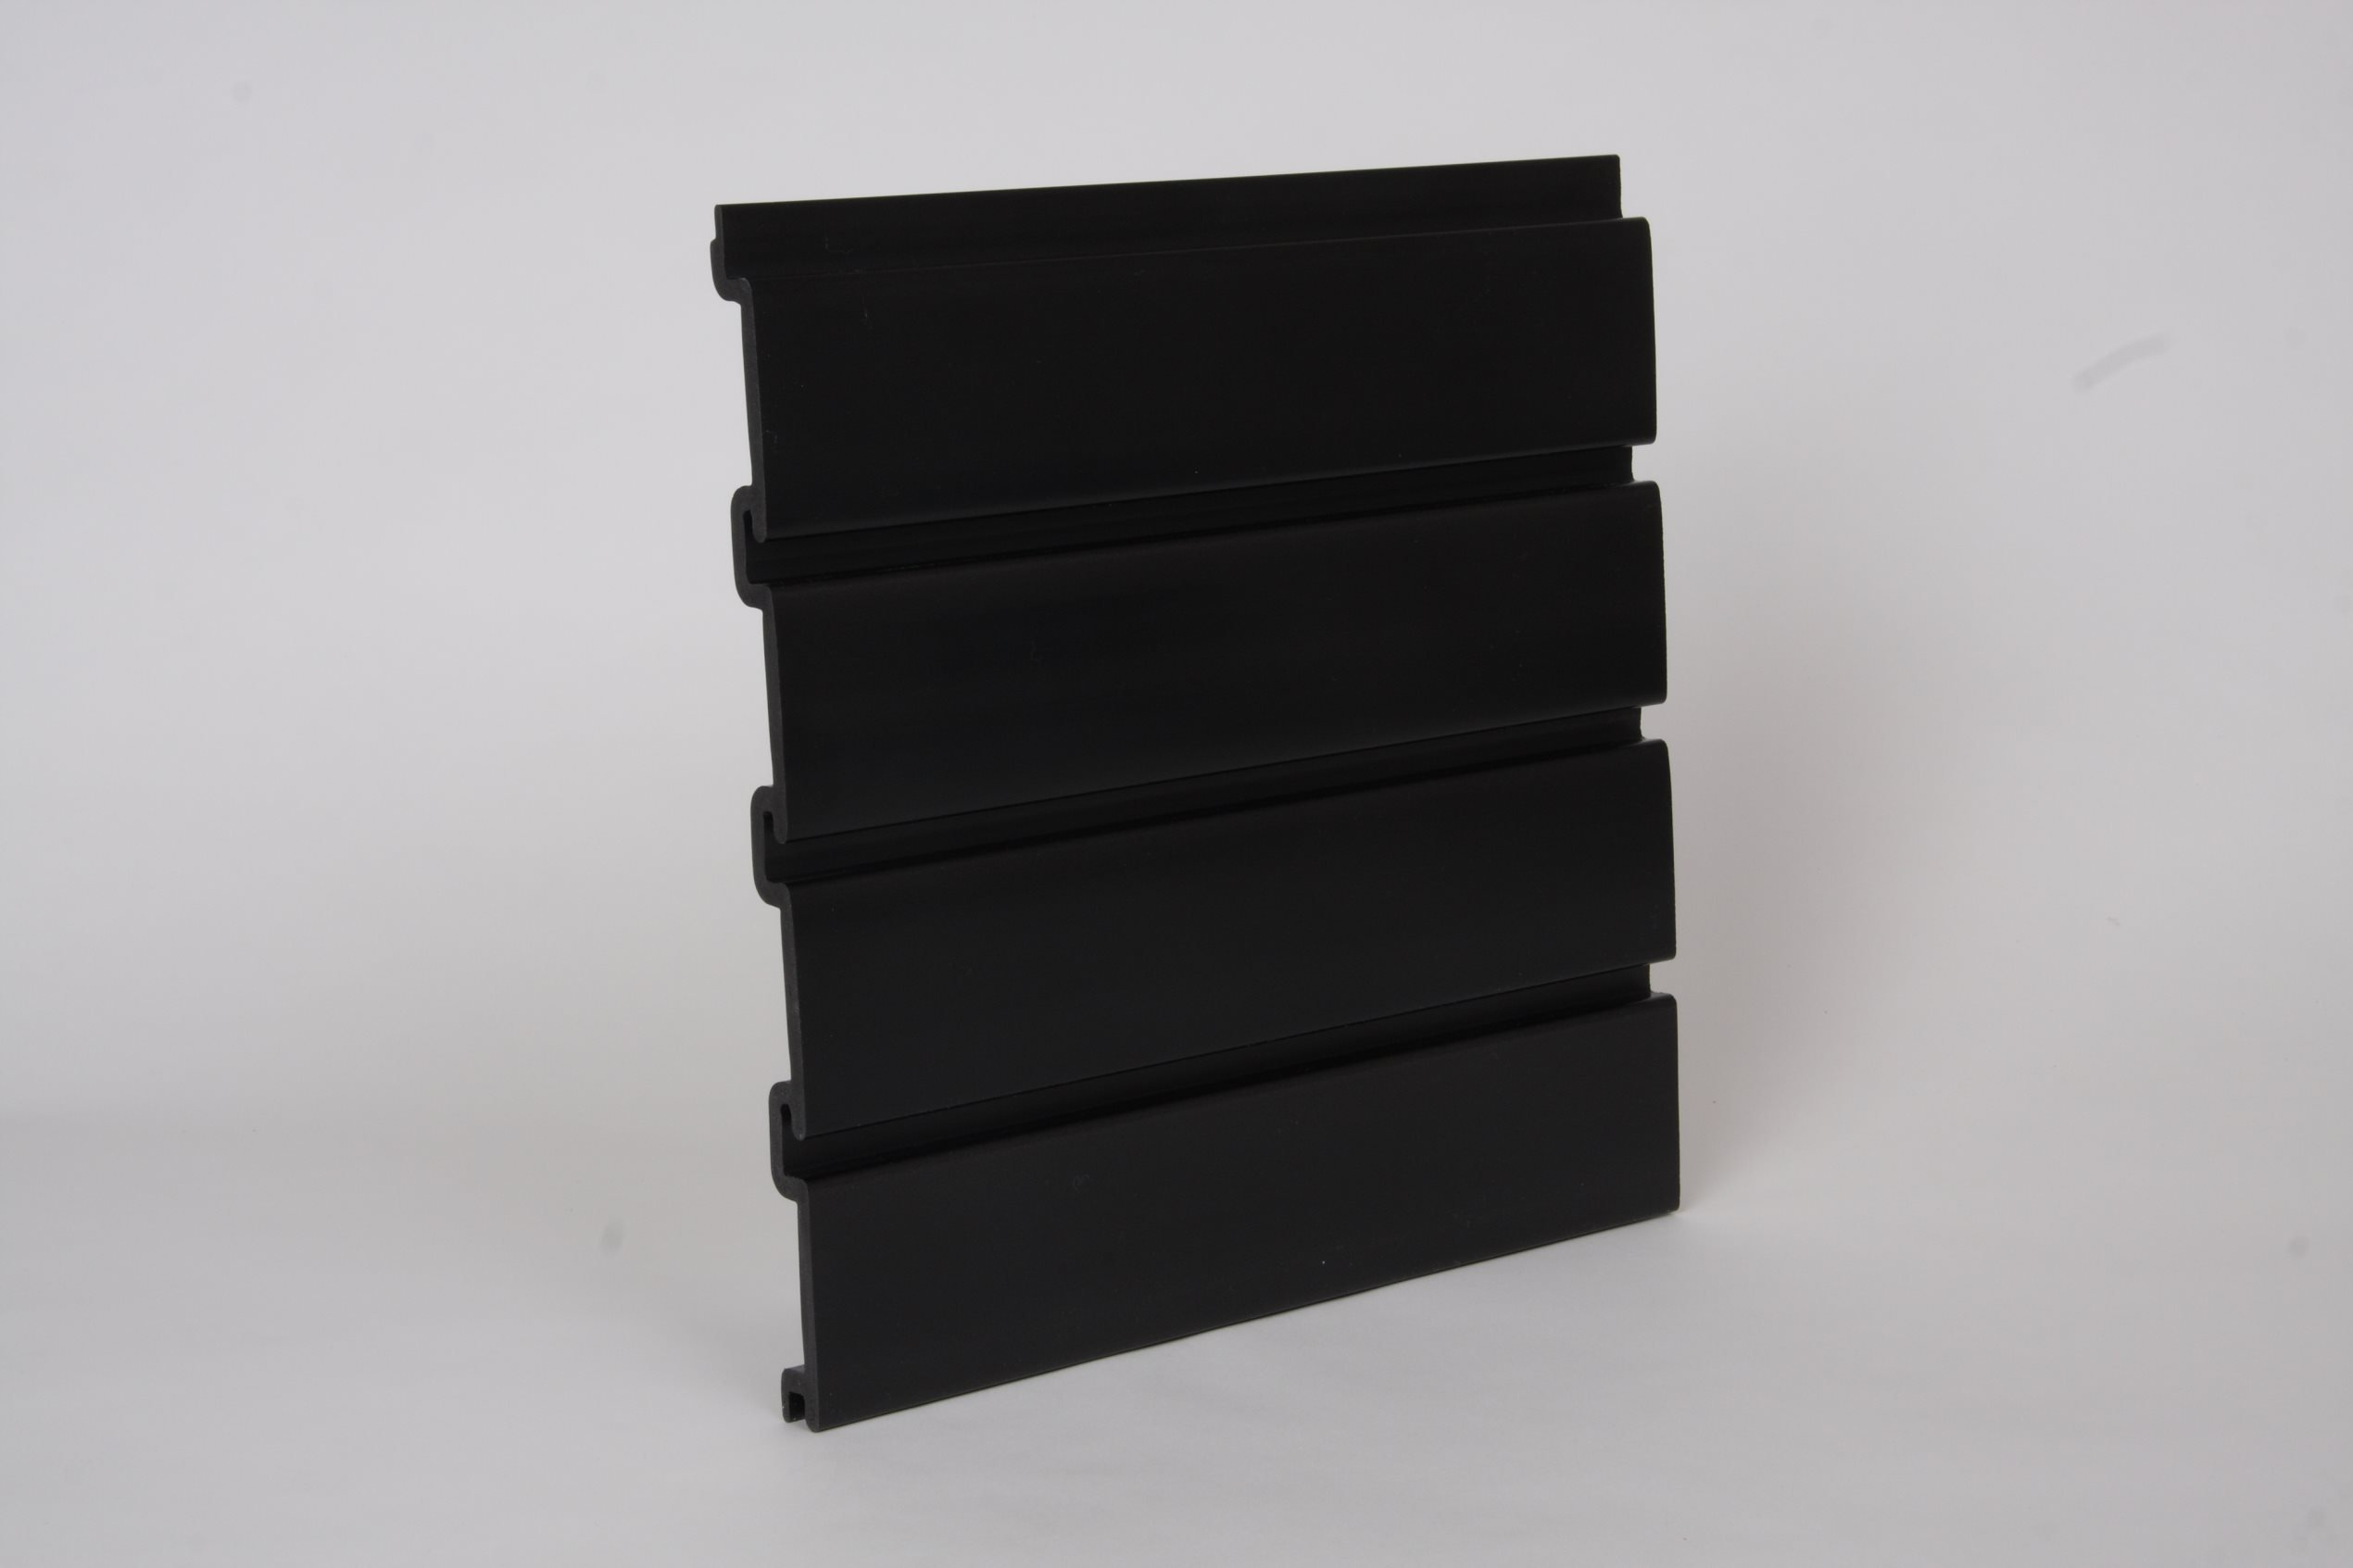 8 Pack Black Handiwall 12 Inch x 4 Ft Slatwall Panels for Garage and Retail Storage